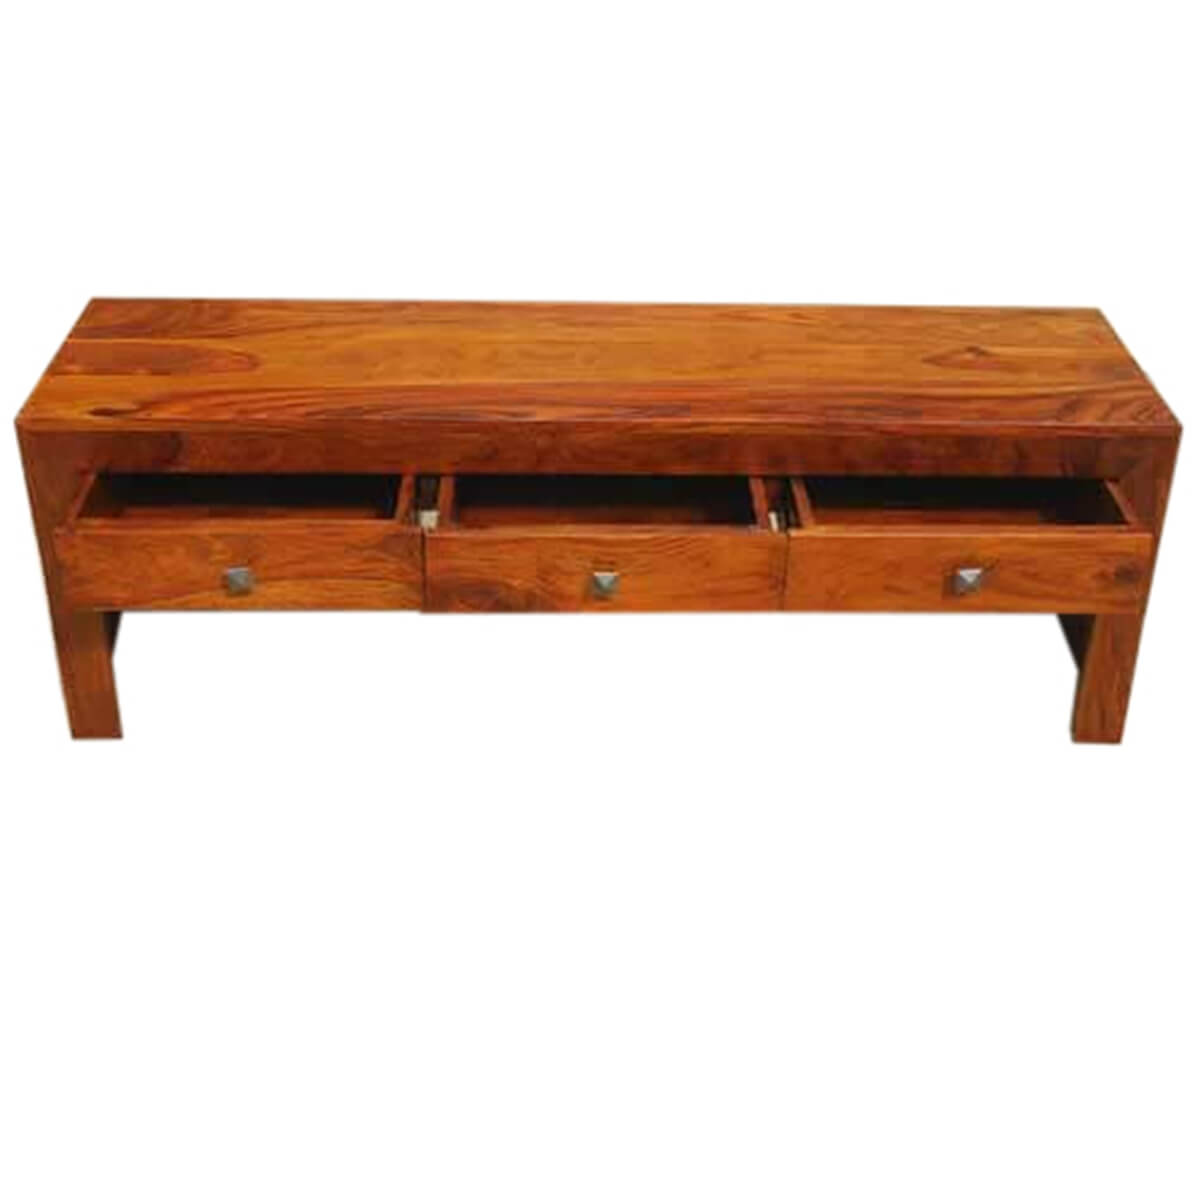 Wood Low Profile Block Style Cocktail Coffee Table W Drawers